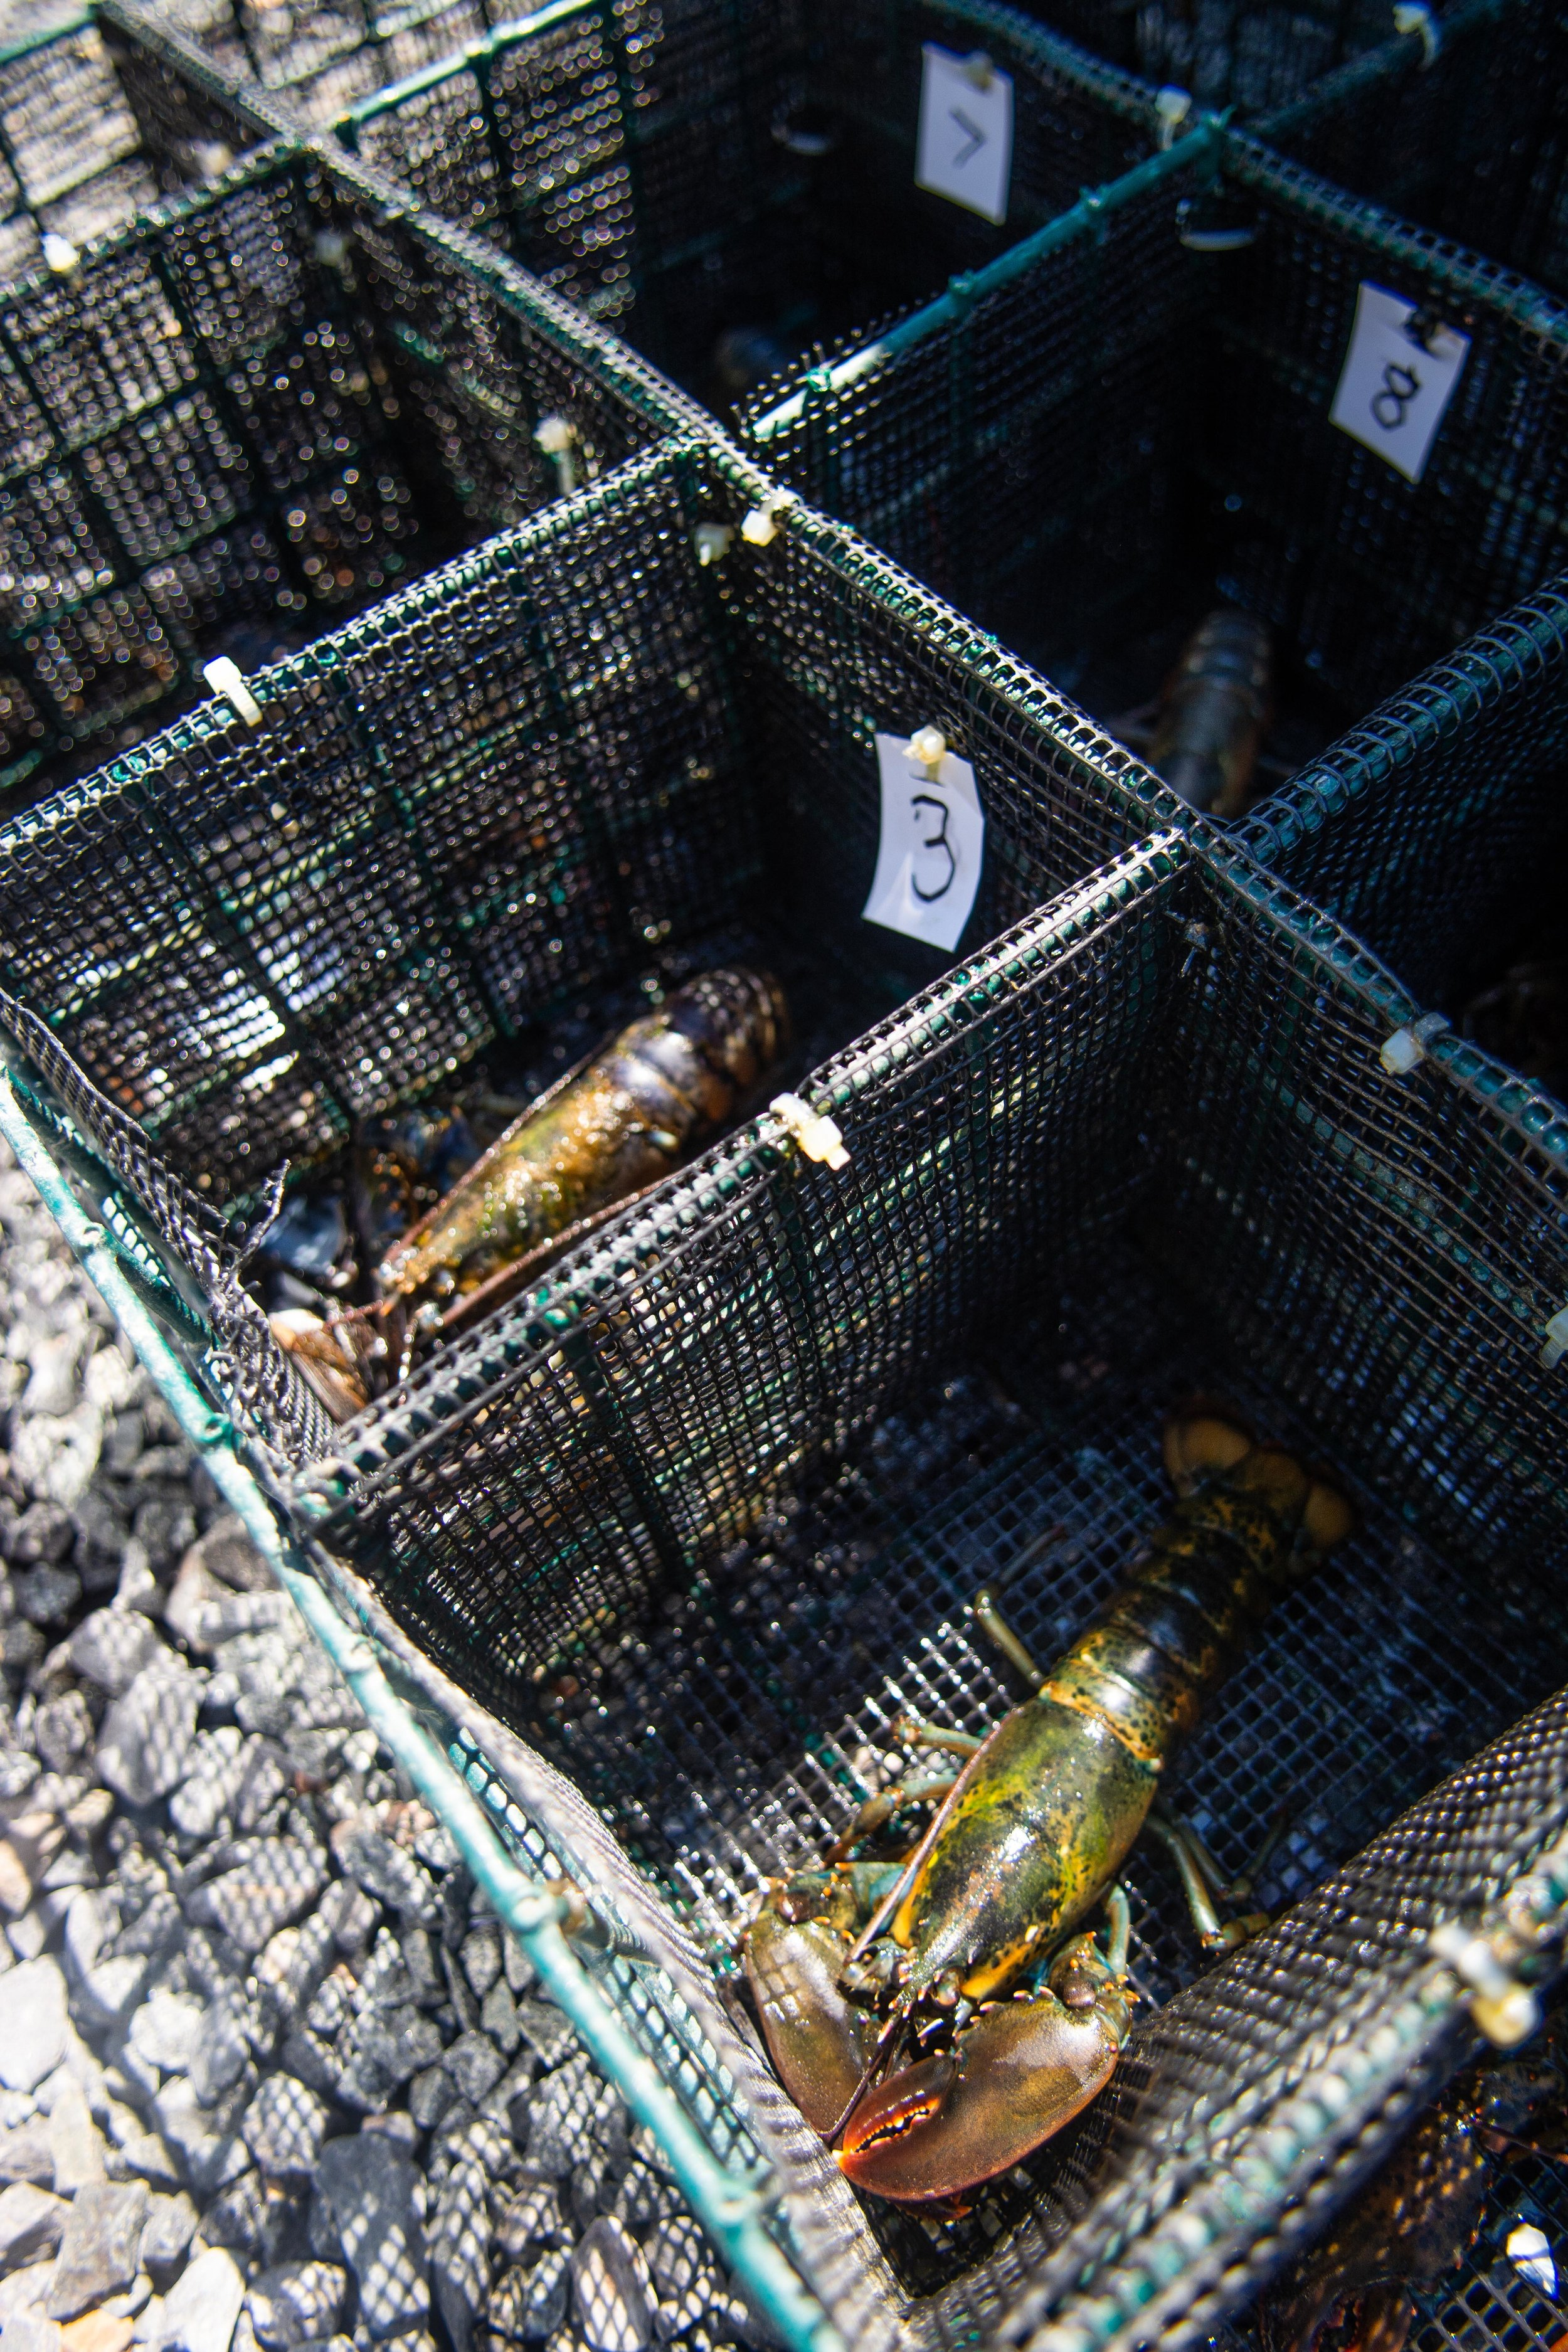 Lobsters are separated before the experiment to prevent fighting.